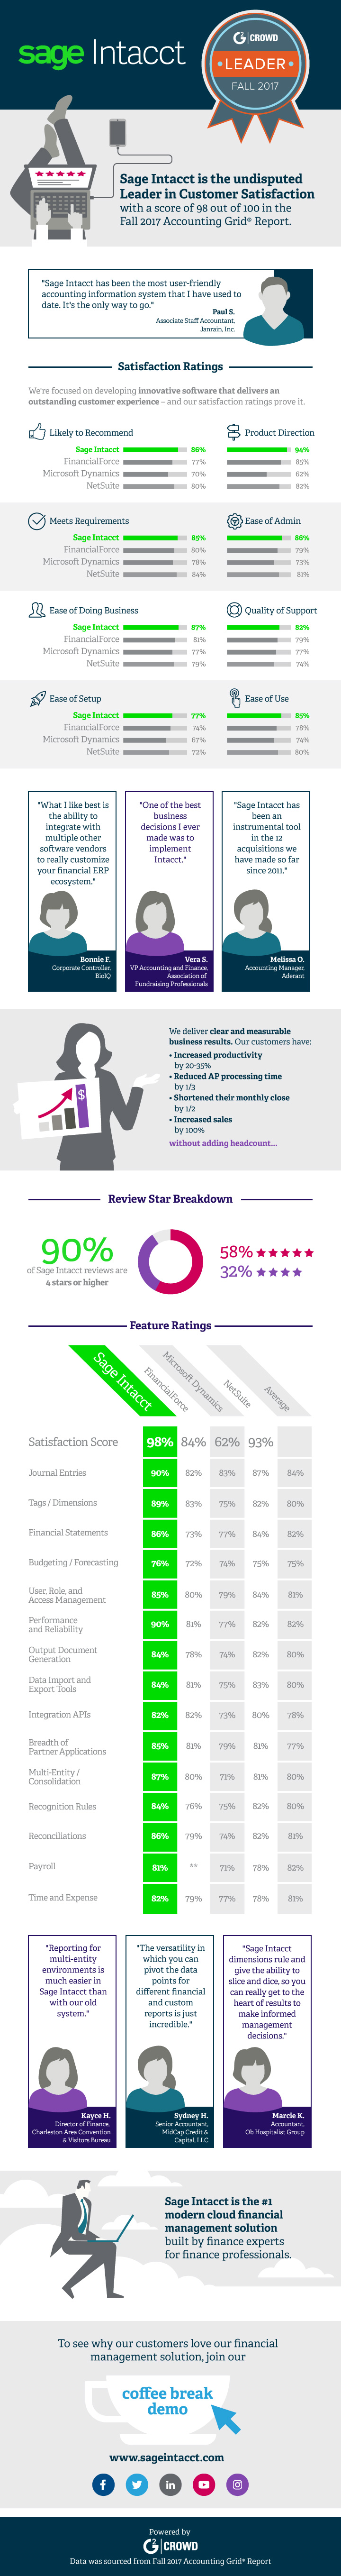 Sage Intacct is the Undisputed Leader in Customer Satisfaction Infographic